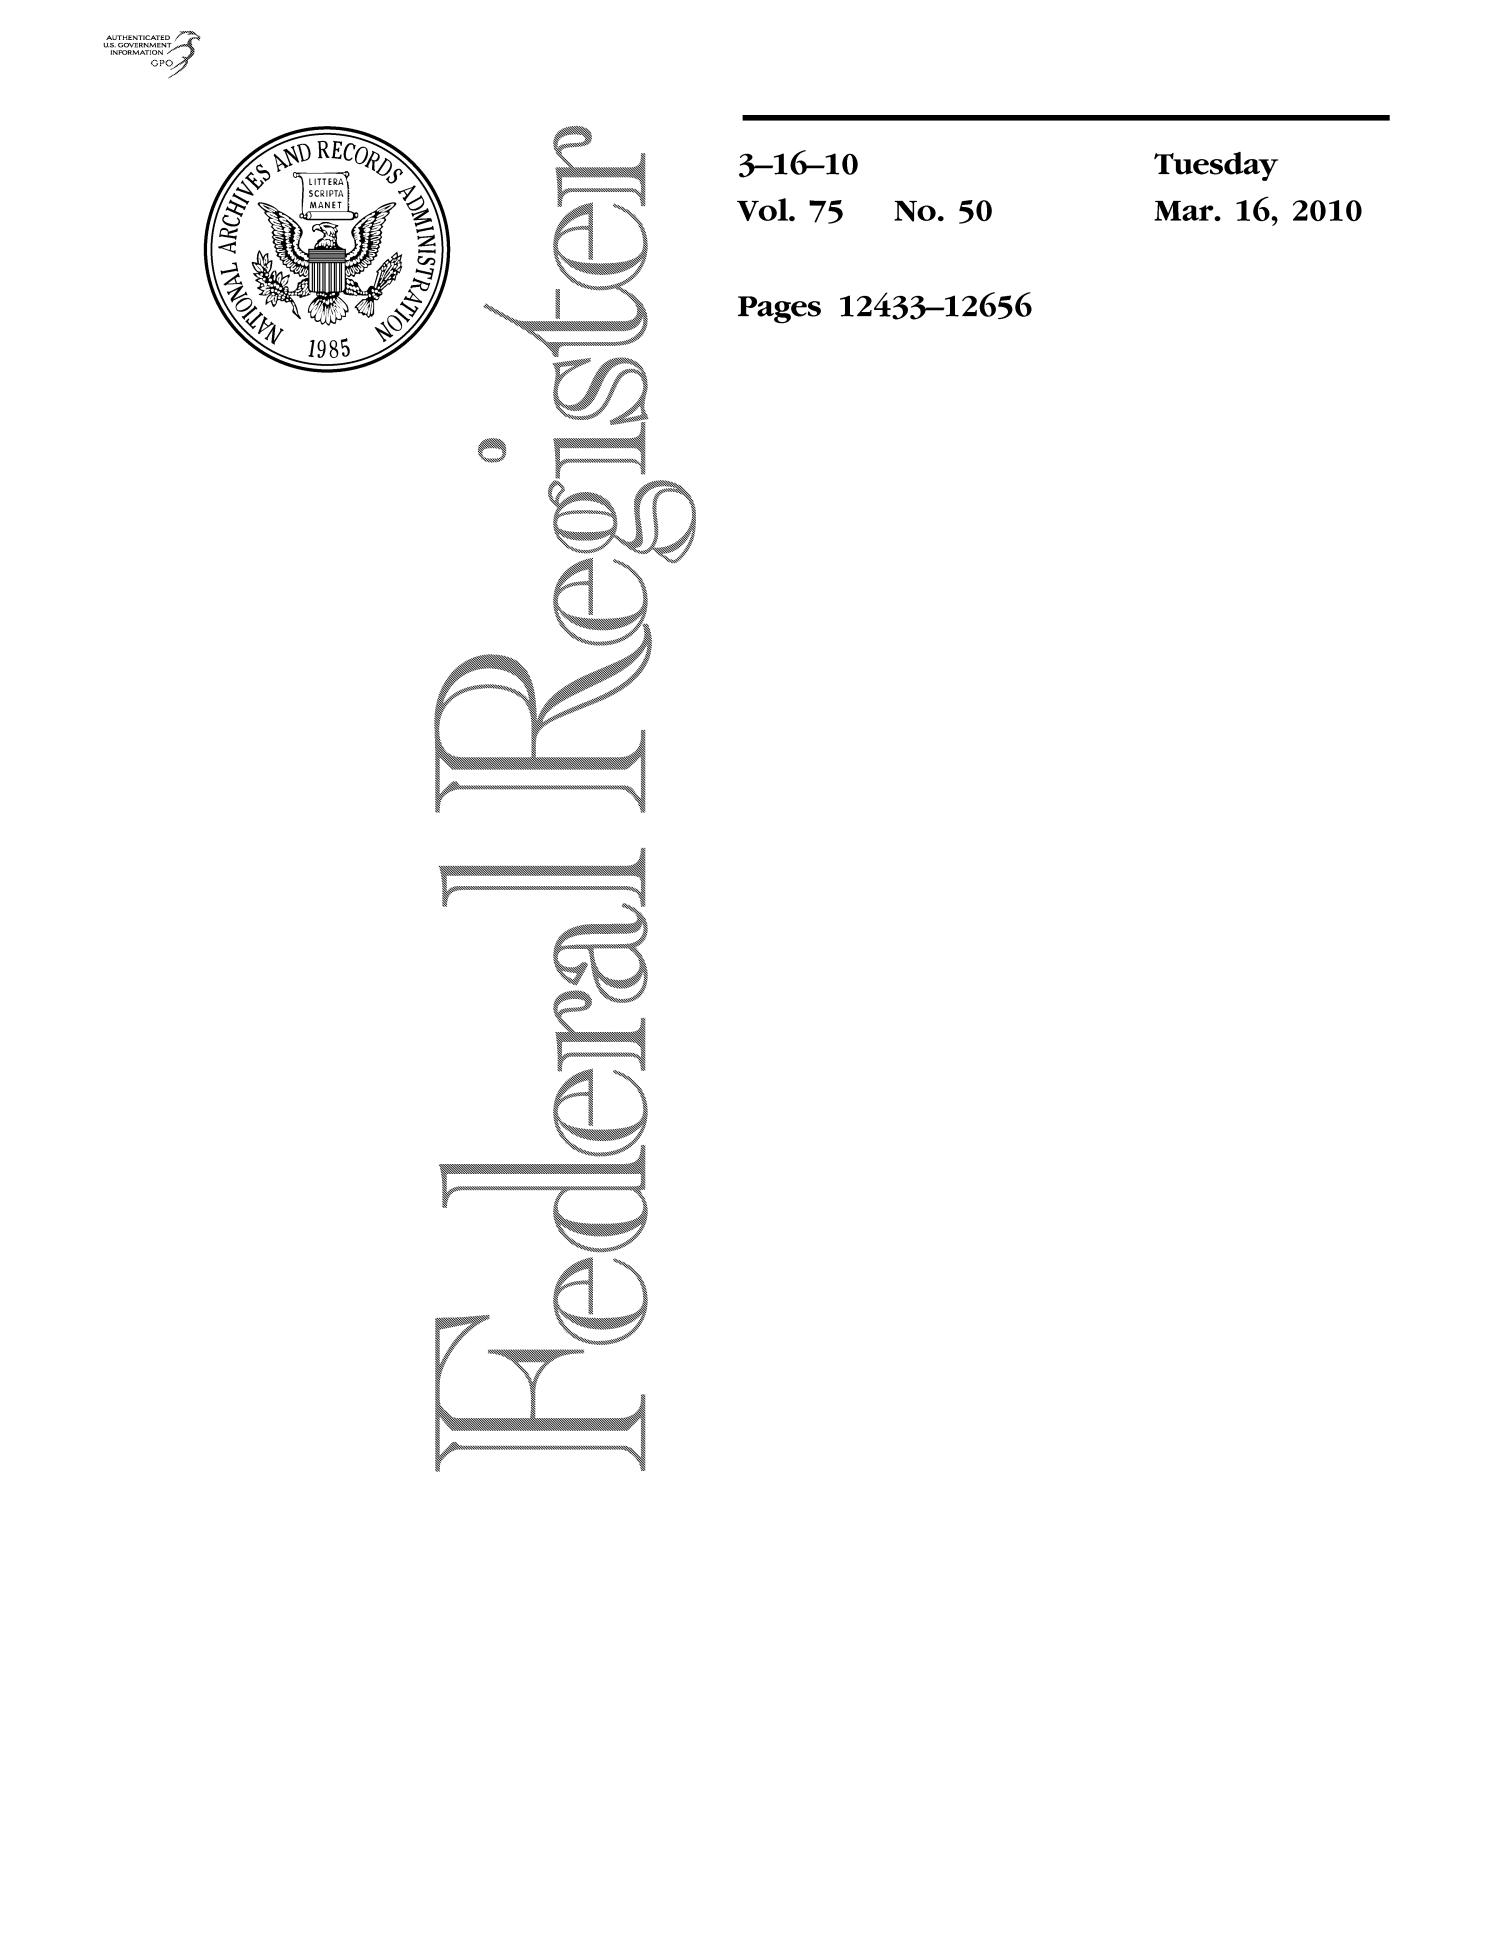 Federal Register, Volume 75, Number 50, March 16, 2010, Pages 12433-12656                                                                                                      Title Page